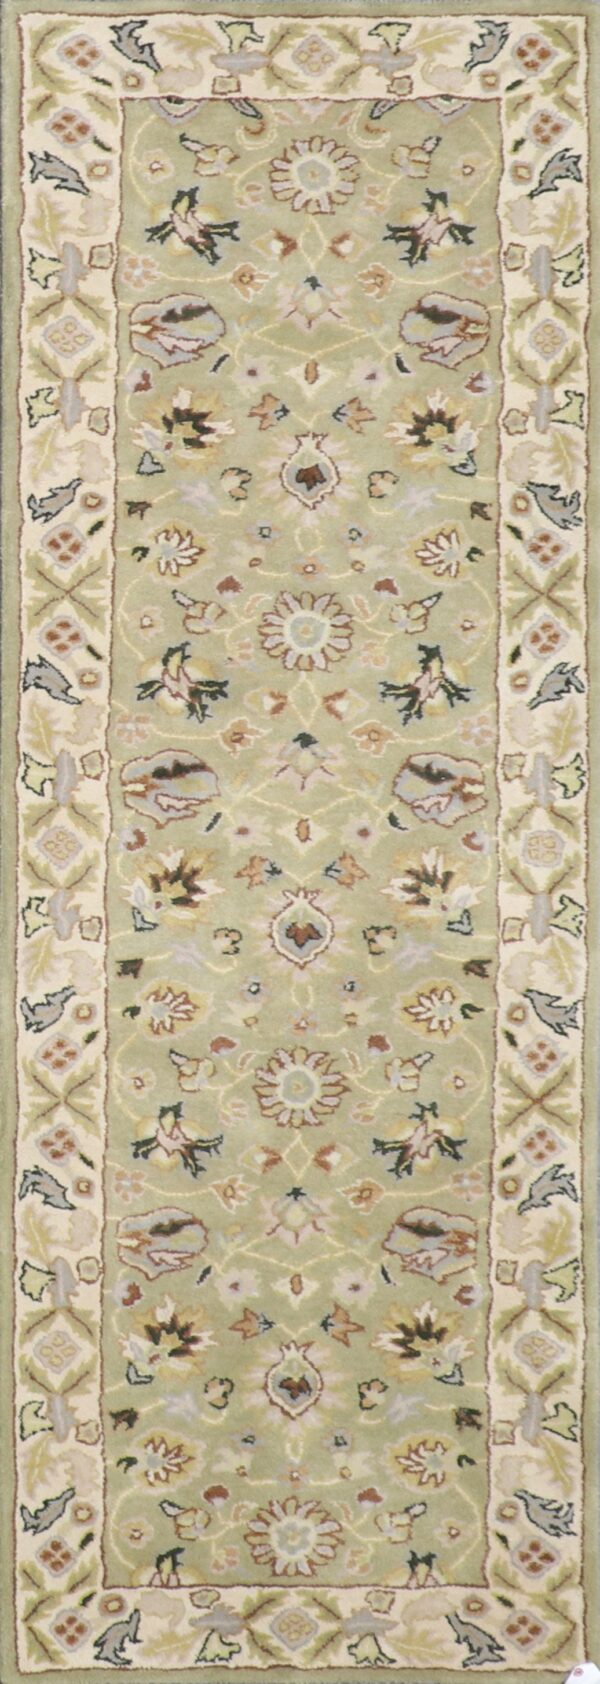 """2'9""""x8'2"""" Decorative Green Wool Hand-Tufted Rug - Direct Rug Import 